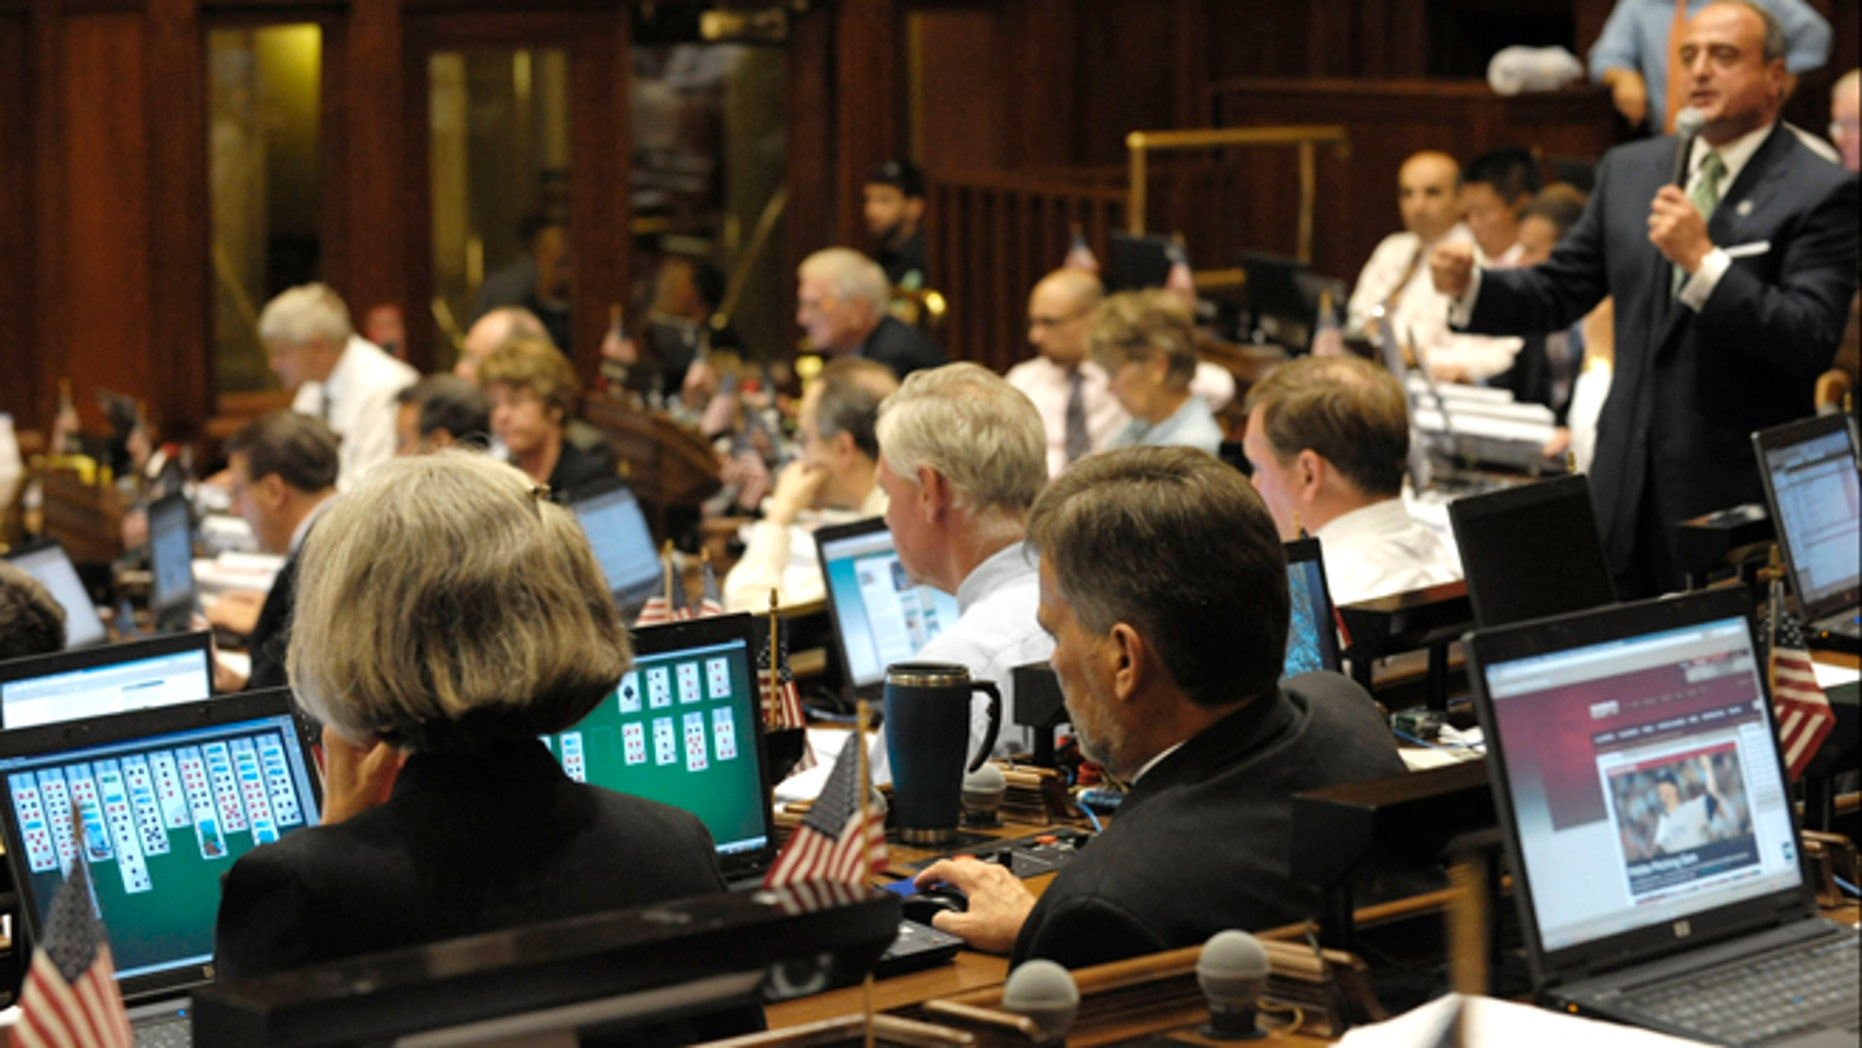 State legislators play solitaire and surf the internet on laptop computers while House Minority Leader Lawrence F. Cafero Jr. speaks prior to a vote on the state budget in 2009.